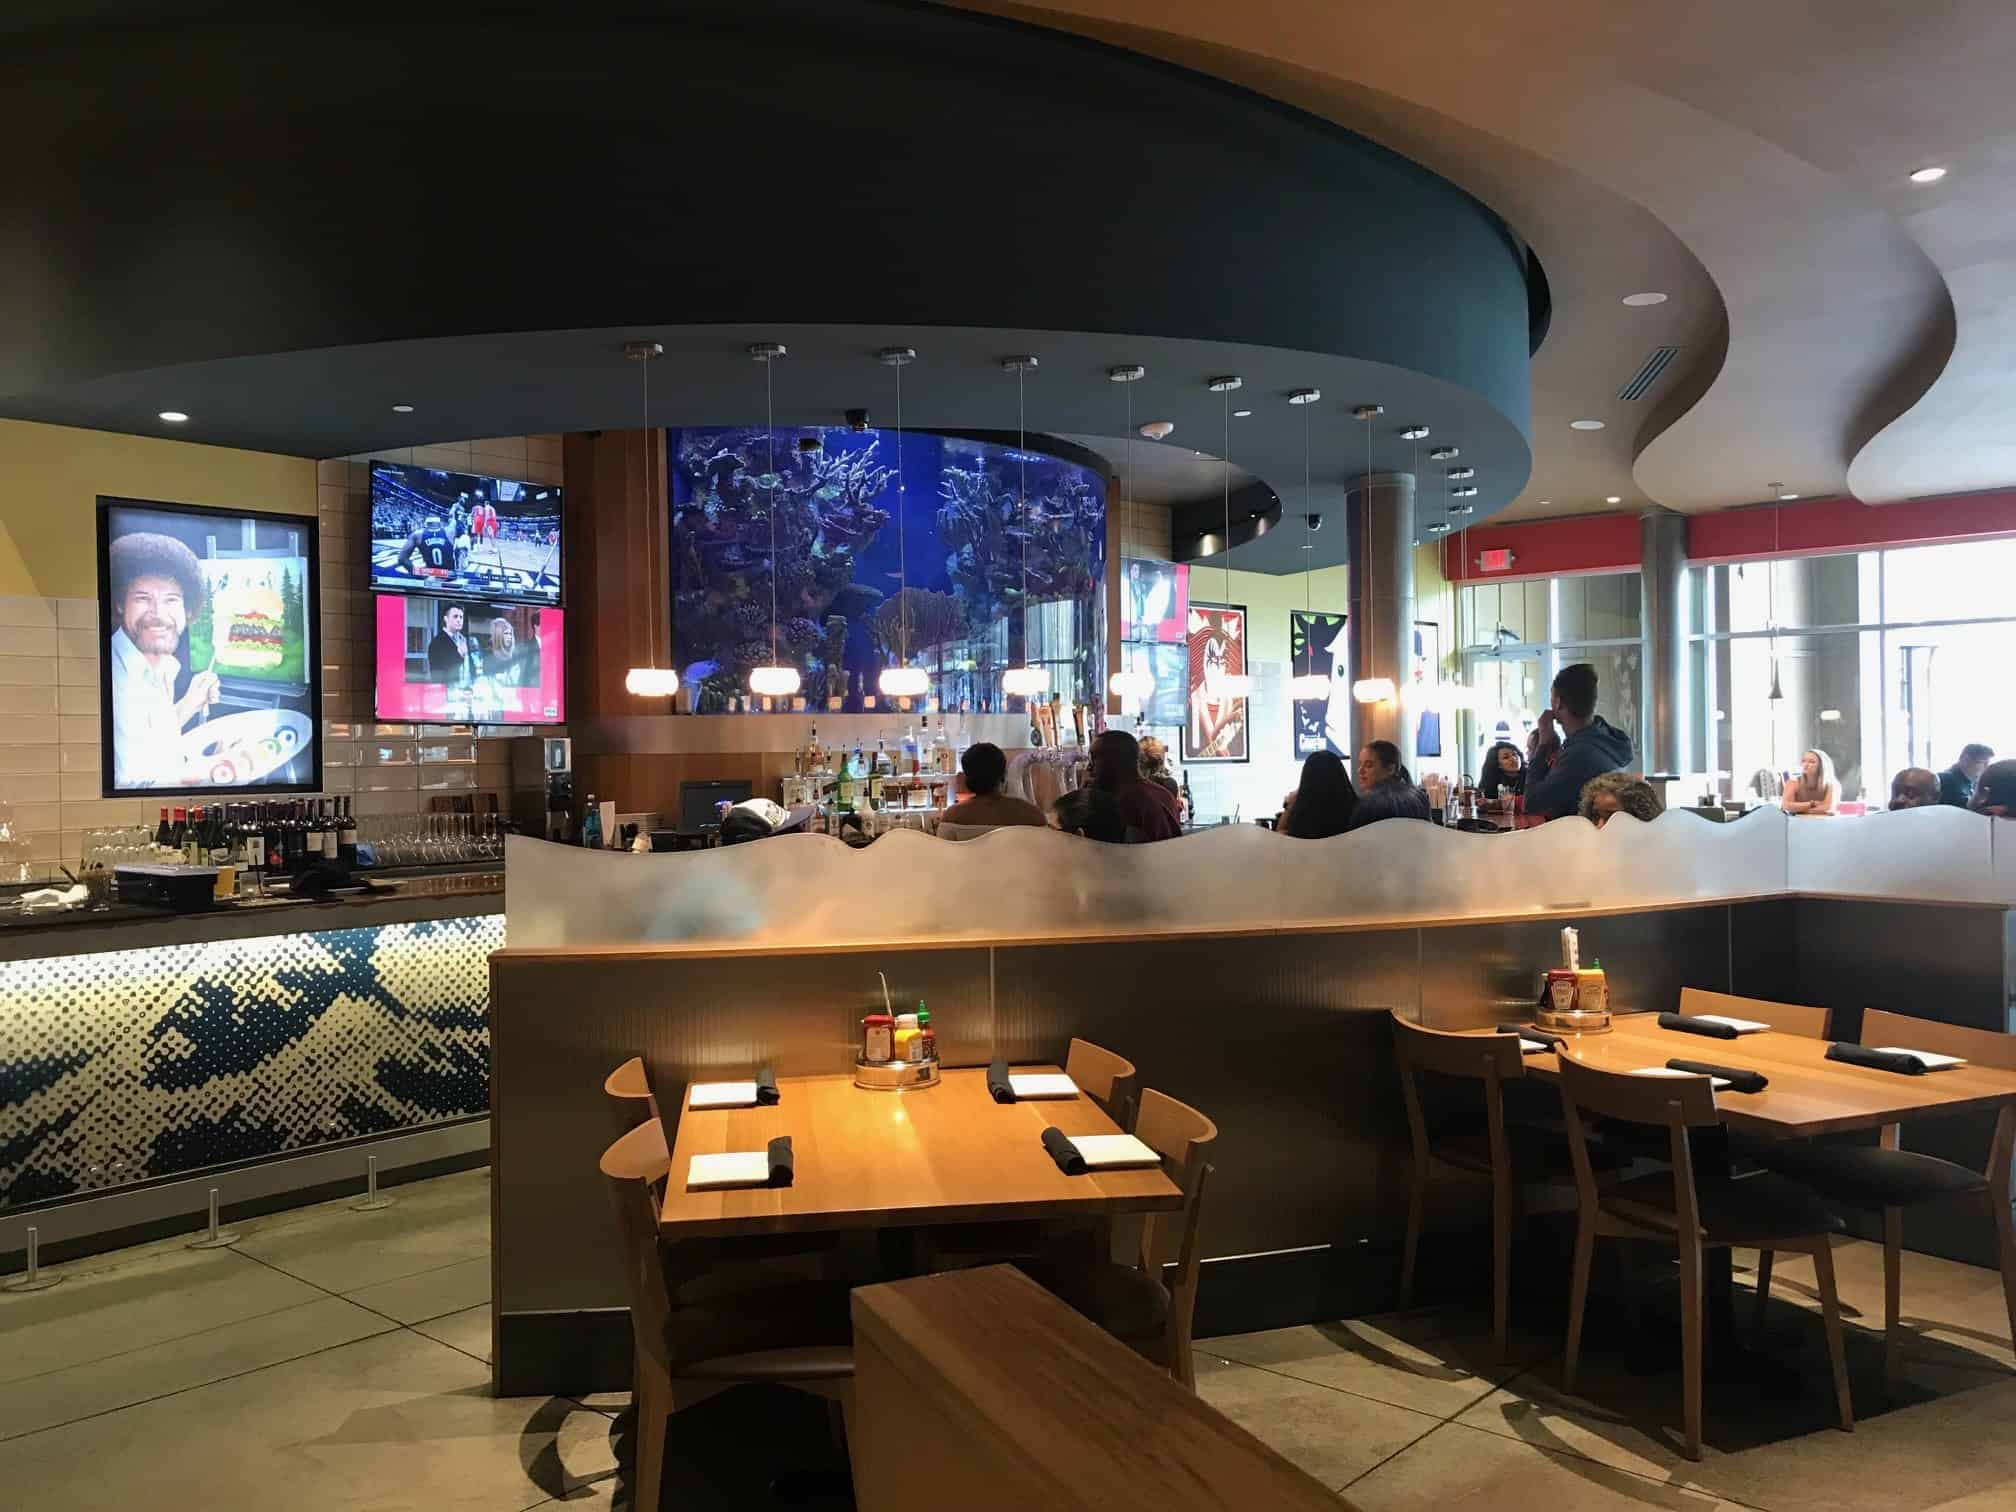 Atlanta's Best Family-Friendly Restaurants: The Cowfish Sushi Burger #AtlantaRestaurant #KidRestaurantAtlanta #AtlantaTravel #FamilyTravelAtlanta #FamilyTravel